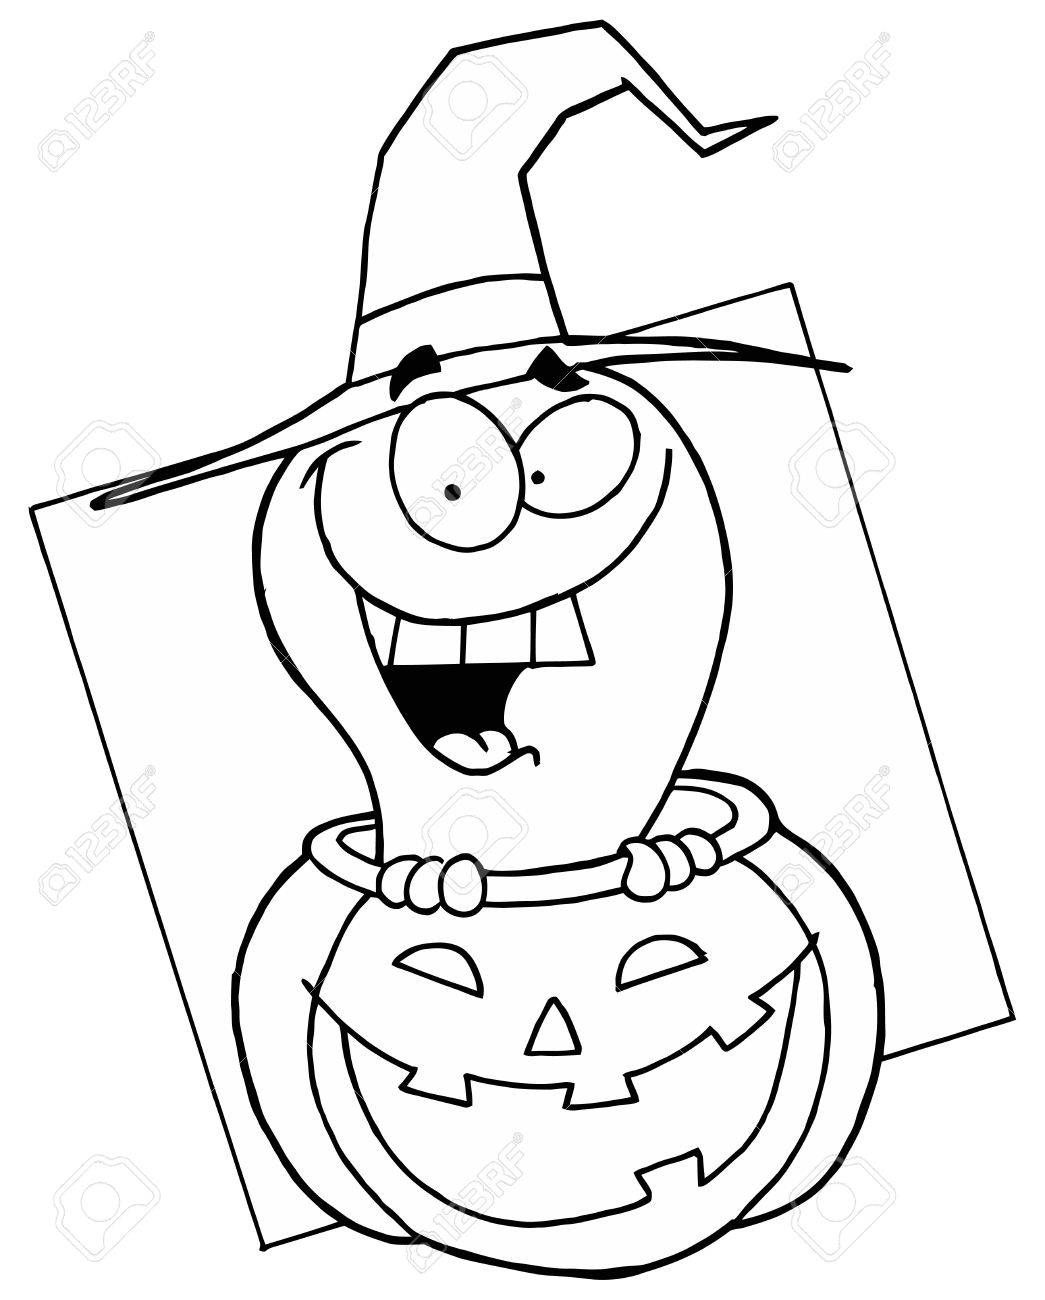 Outlined Ghost in Pumpkin Stock Photo - 6971250